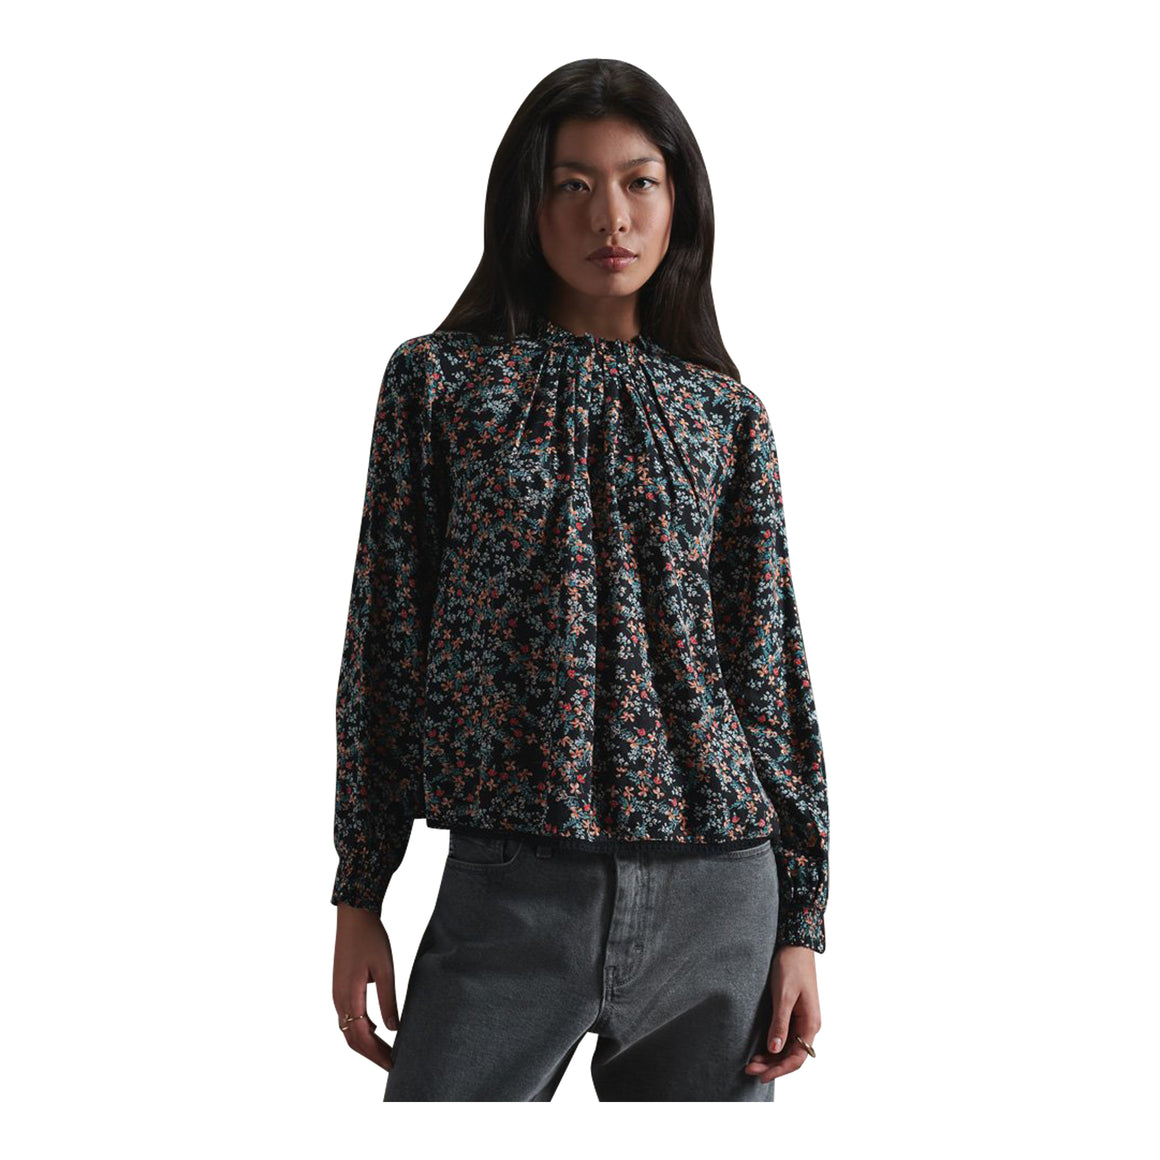 Richelle Top for Women in Autumn Daisy